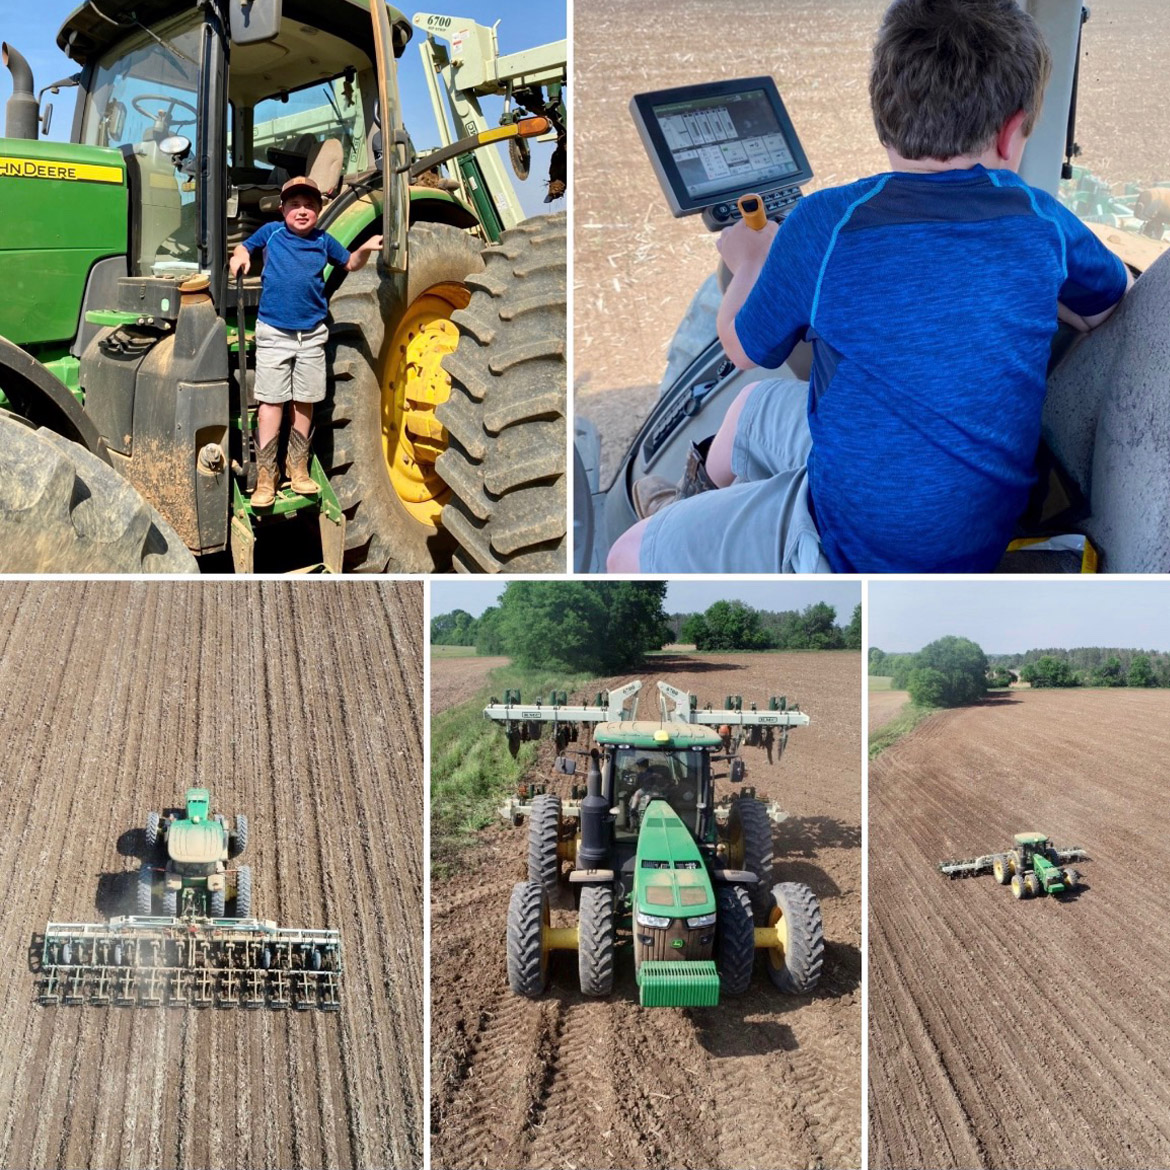 Cleveland handles the 370 horsepower John Deere 8370 R on his own, dragging a harrow and laying rows for his father to plant in.